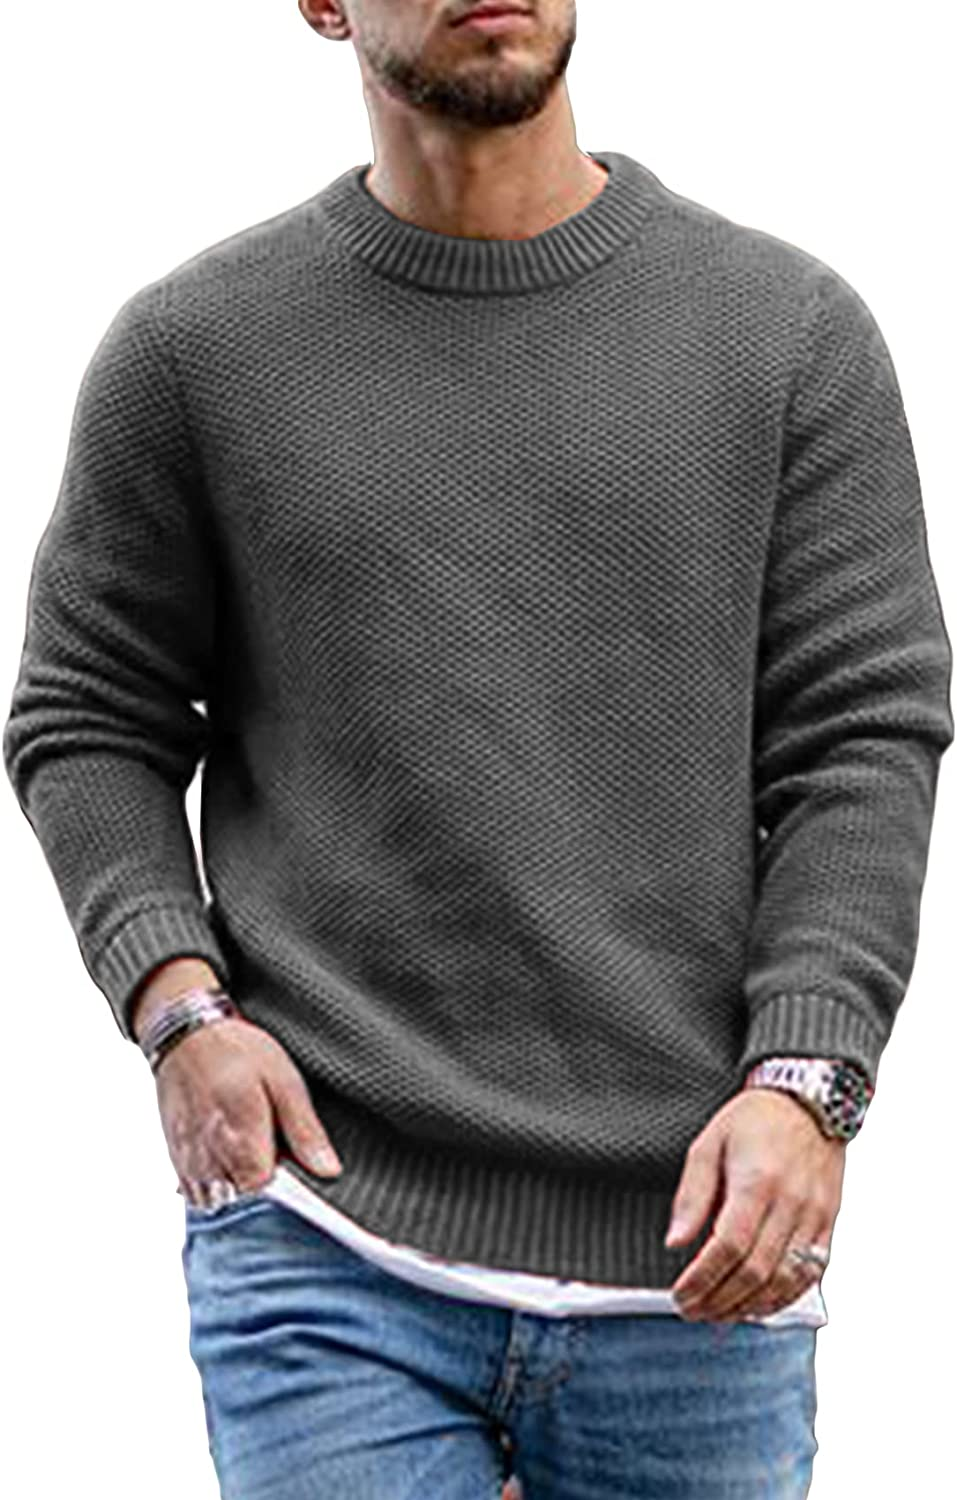 Ryannology Mens Pullover Sweaters Casual Cable Knitted Crewneck Winter Soft Lightweight Sweaters